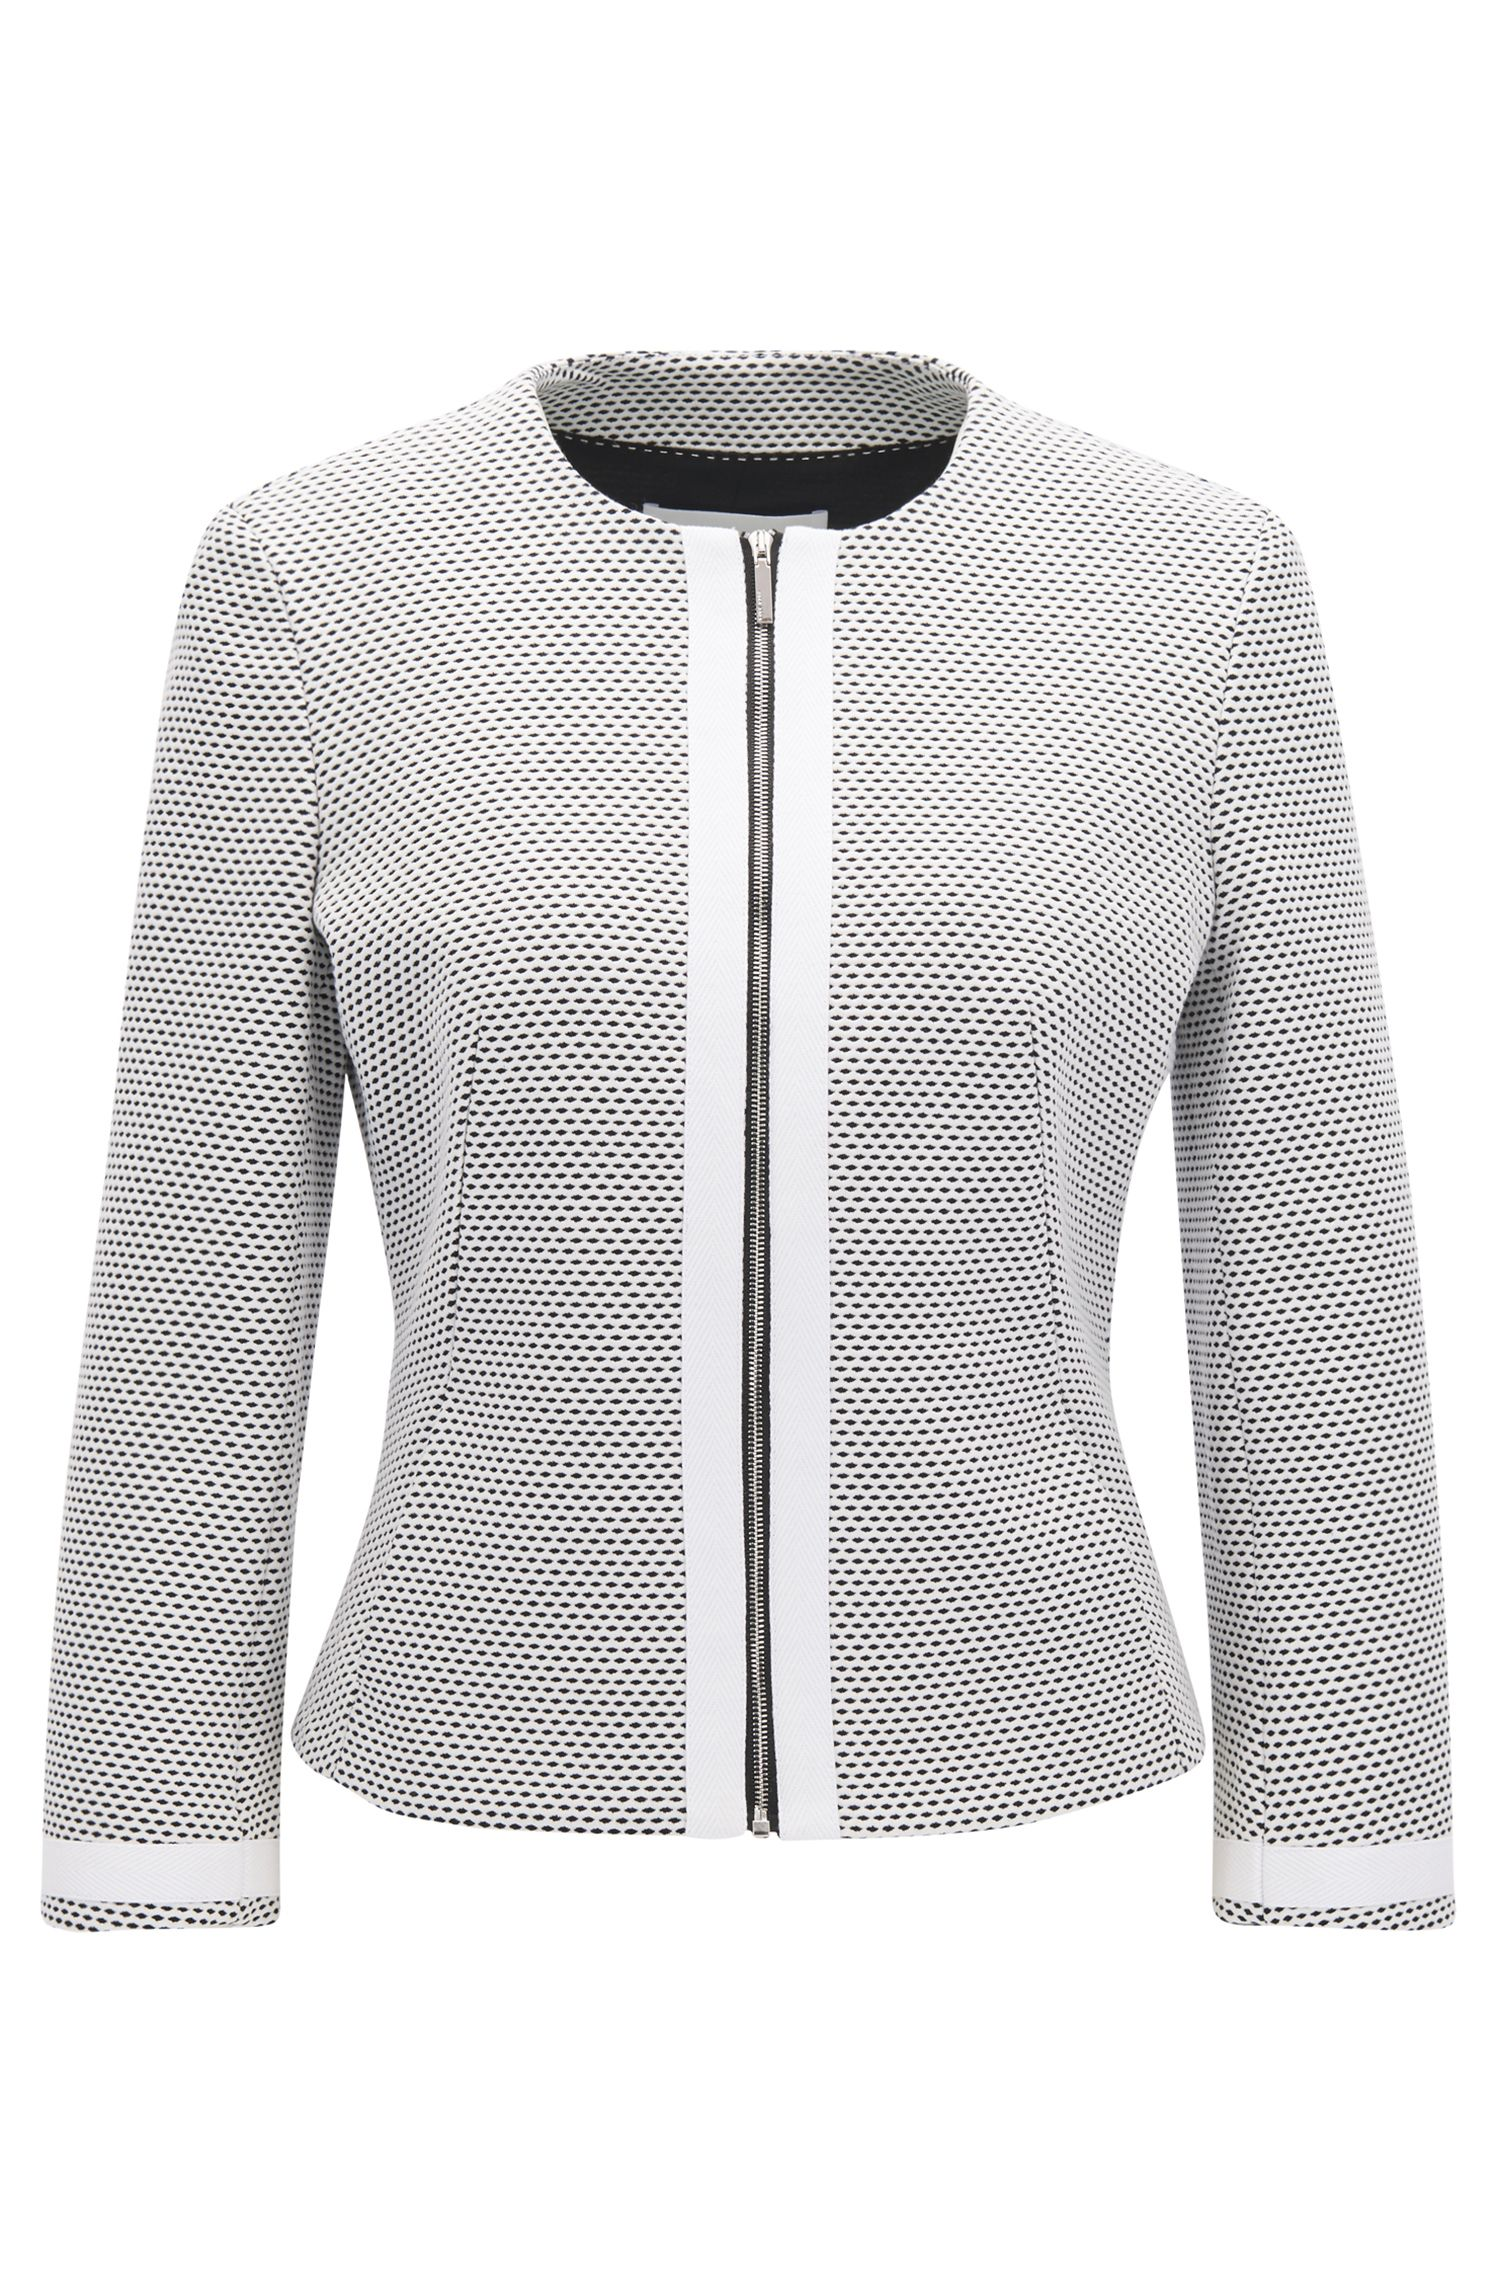 Cotton Knit Zip Jacket | Kaily, Patterned